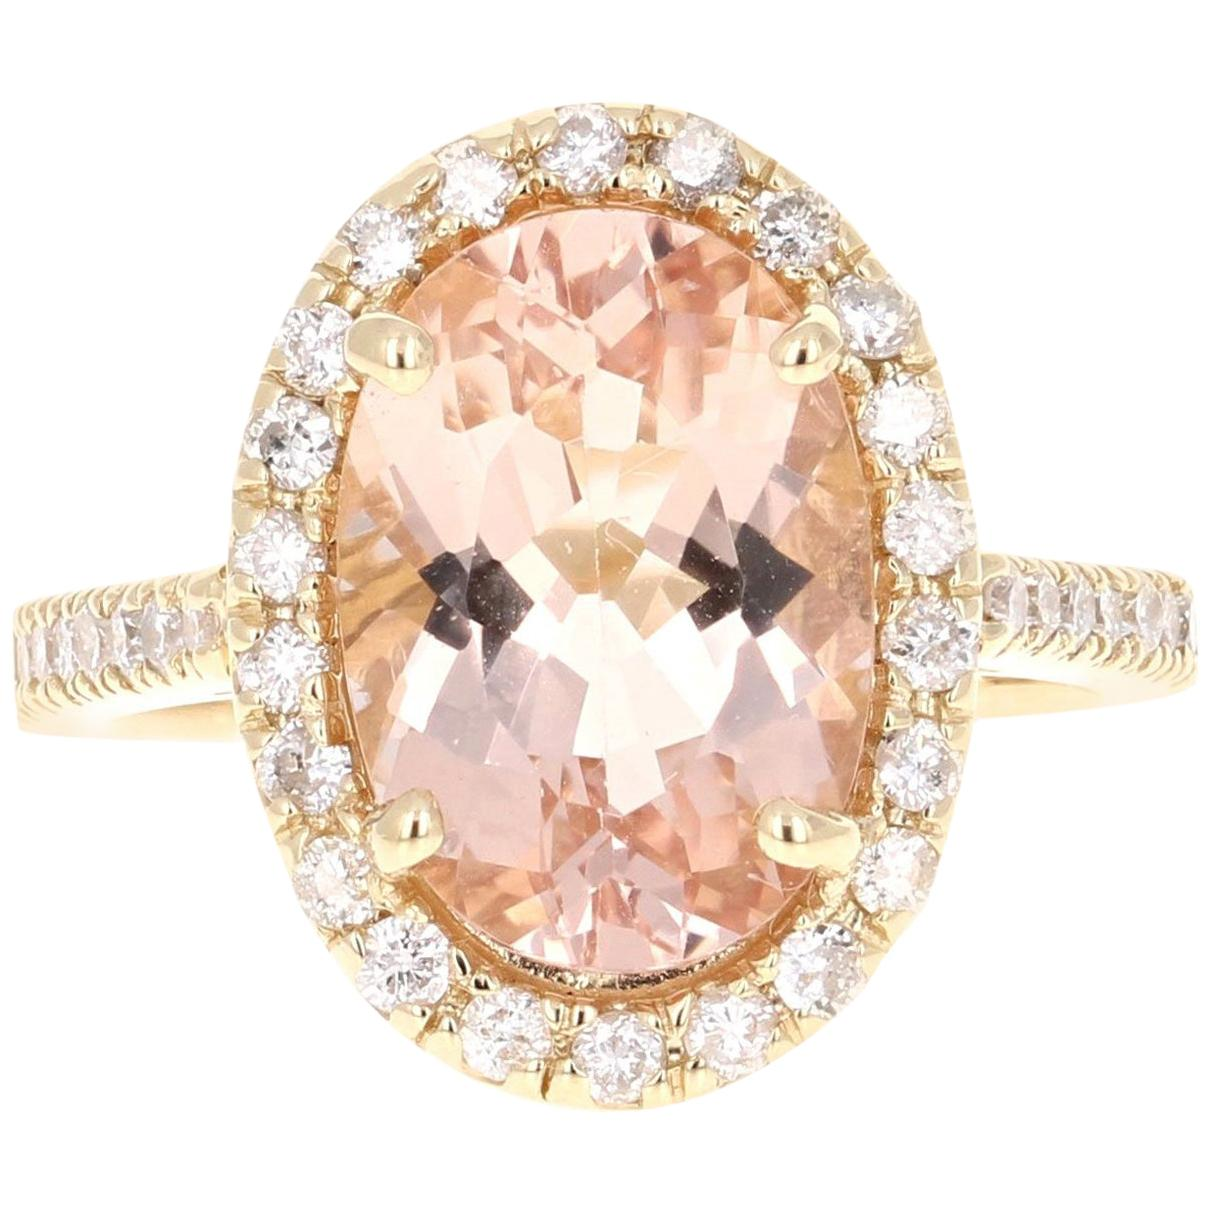 4.59 Carat Morganite Diamond 14 Karat Yellow Gold Ring